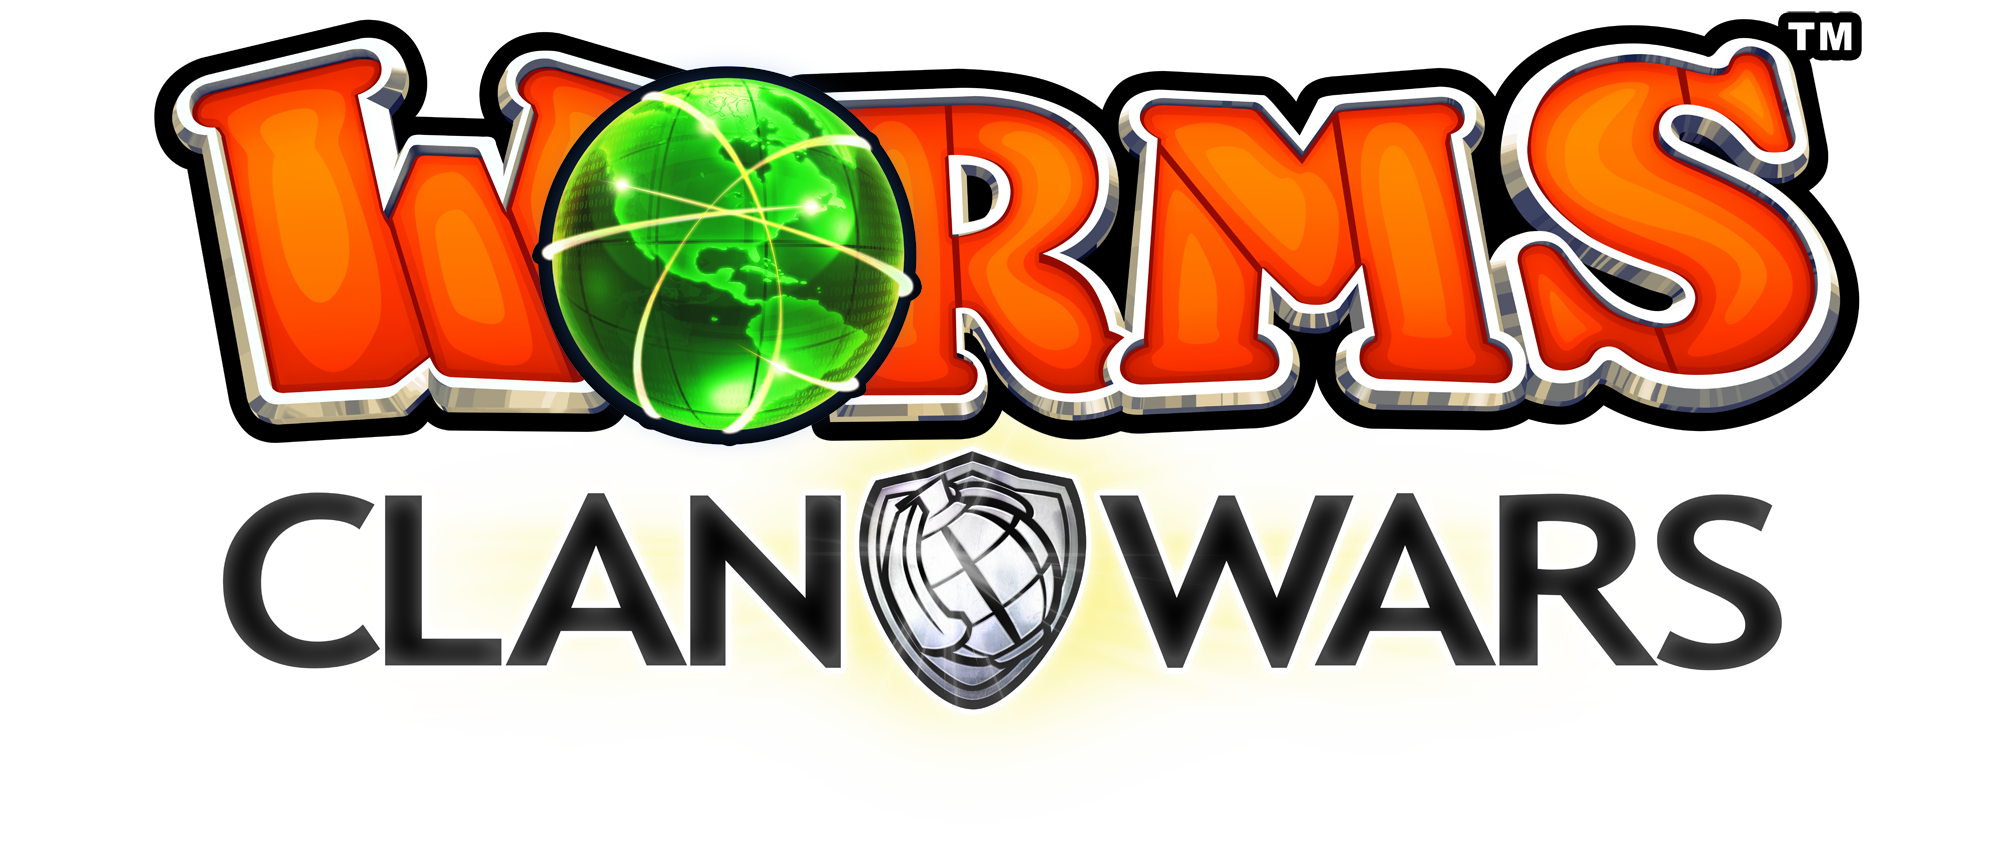 New PC exclusive Worms™ Clan Wars title announced!